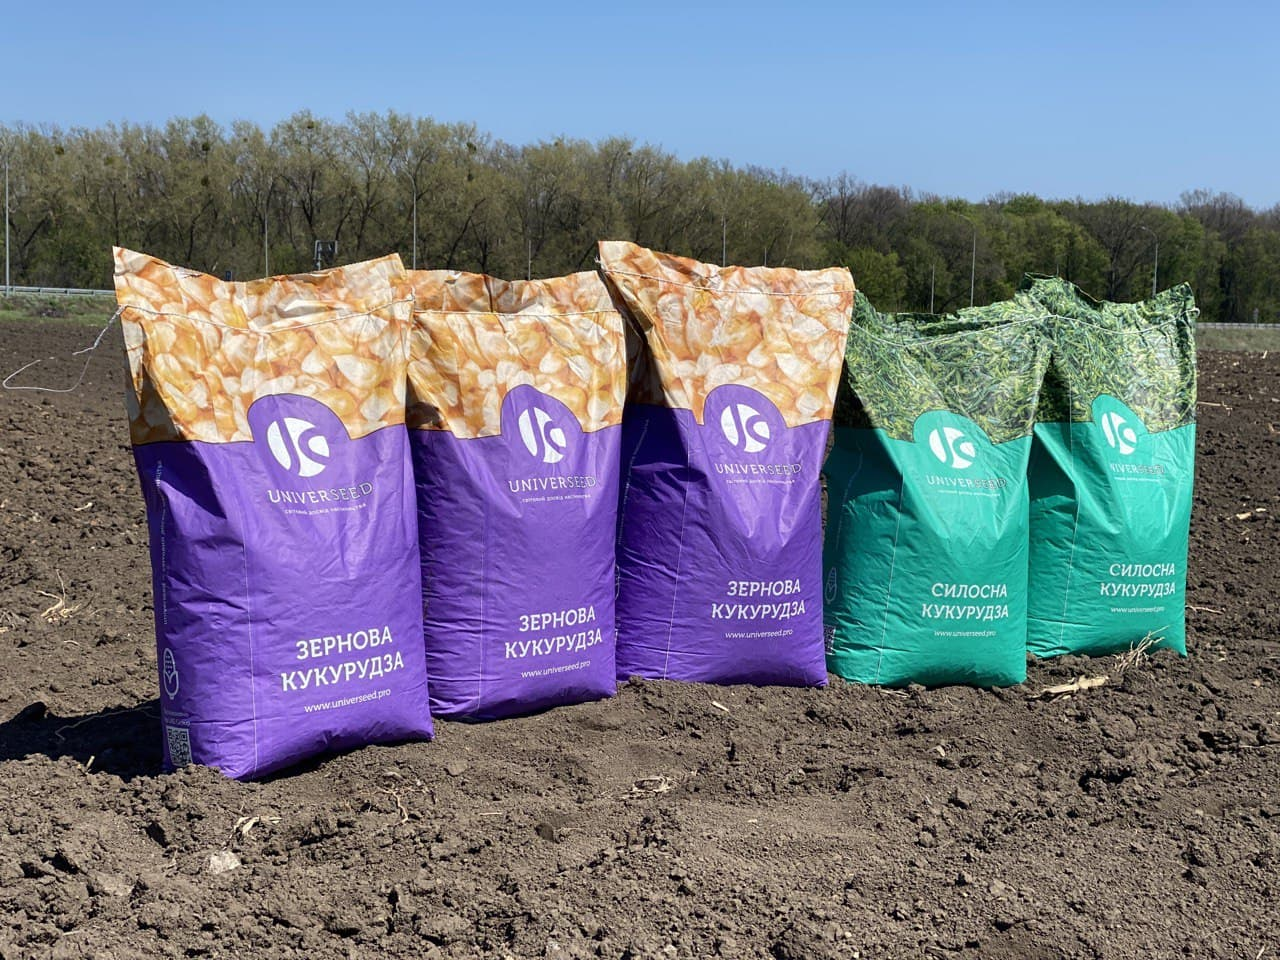 UNIVERSEED products